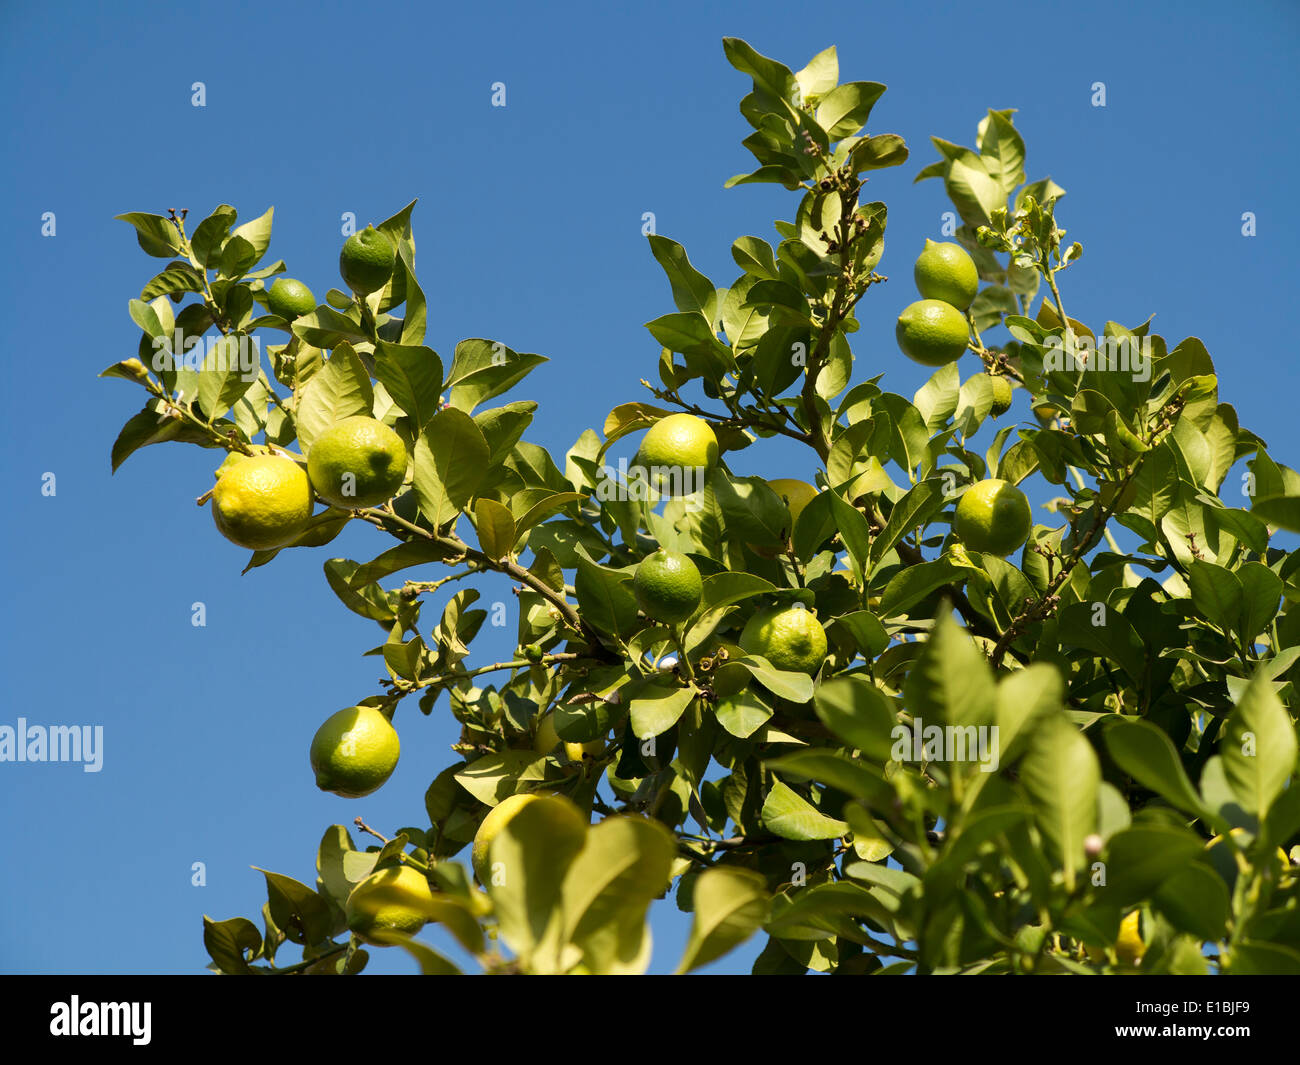 Detail of the top section of a lemon tree with fruit against a rich blue sky - Stock Image